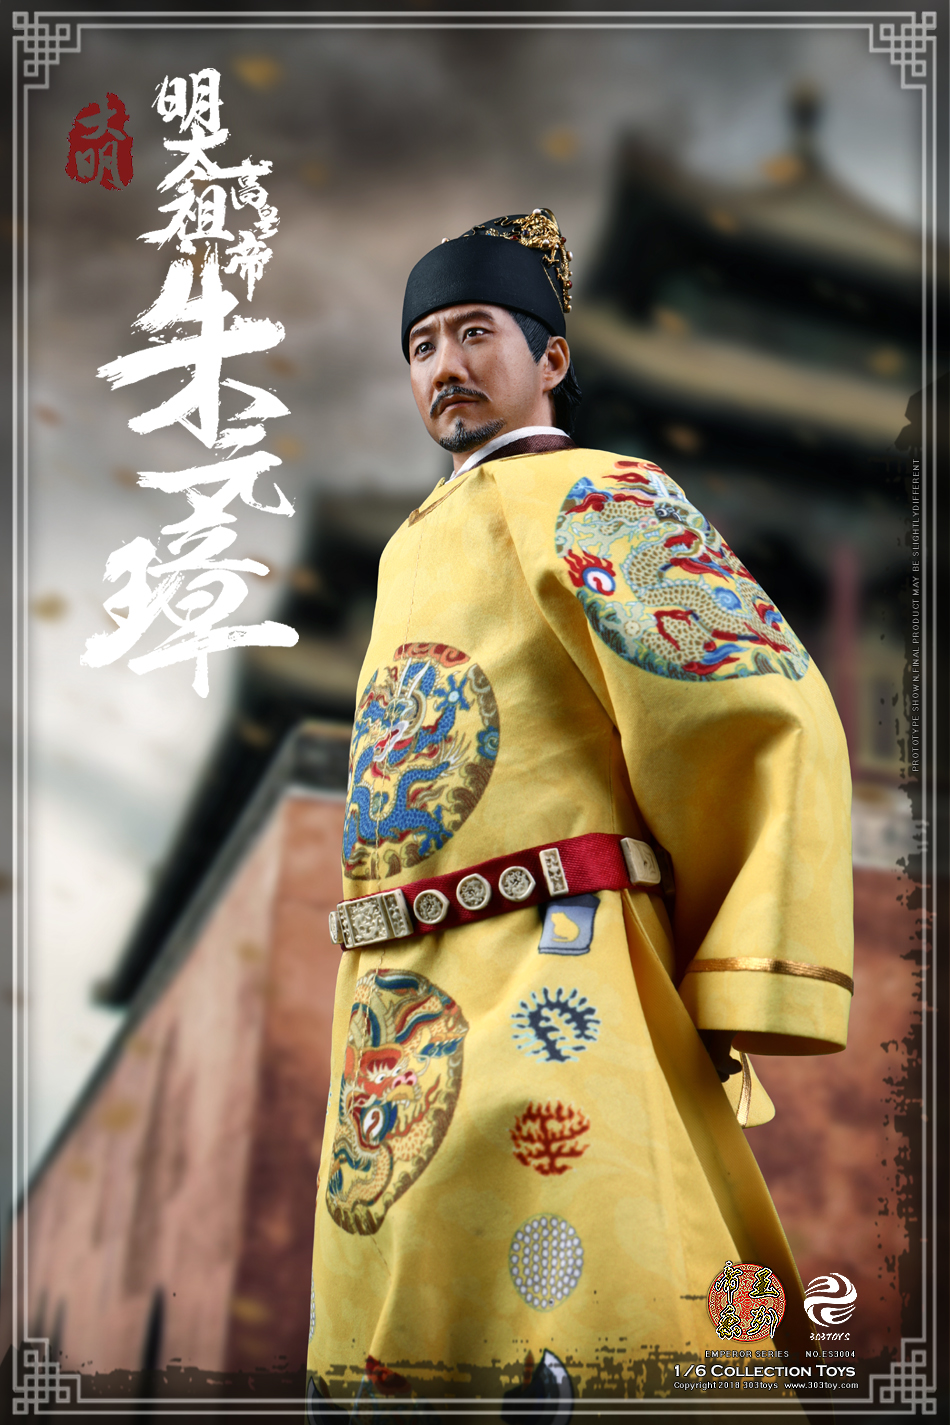 303TOYS ES3004 SERIES OF EMPERORS - ZHU YUANZHANG (THE EMPERORTAIZU OF MING)